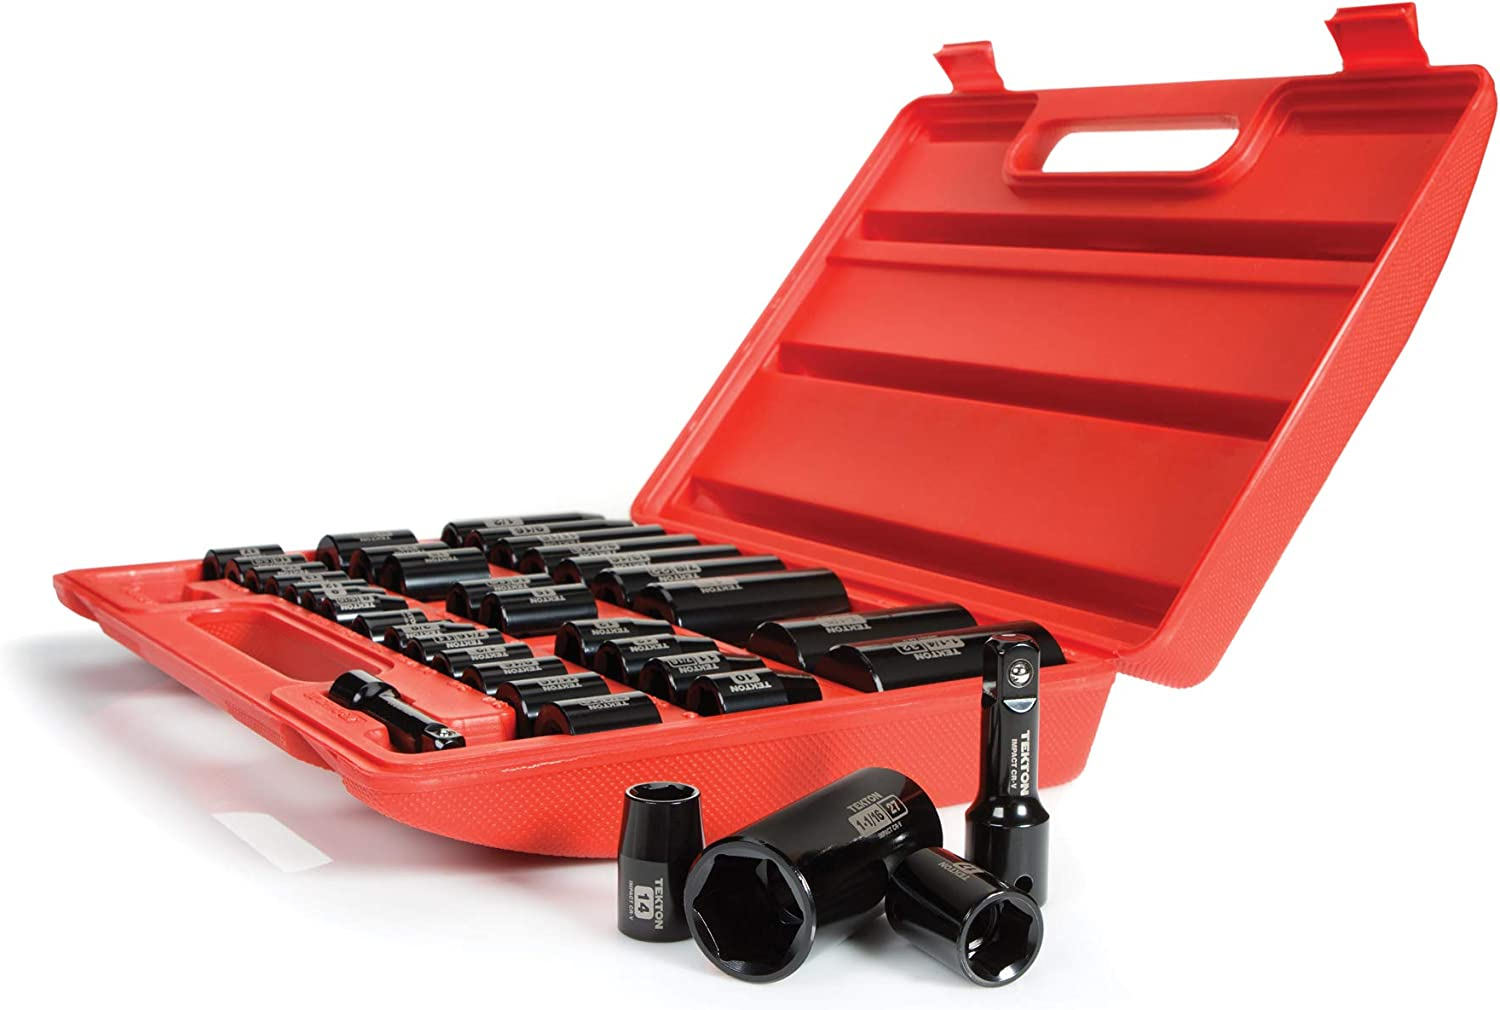 TEKTON 3/8, 1/2 Inch Drive 6-Point Impact Socket Set, 38-Piece